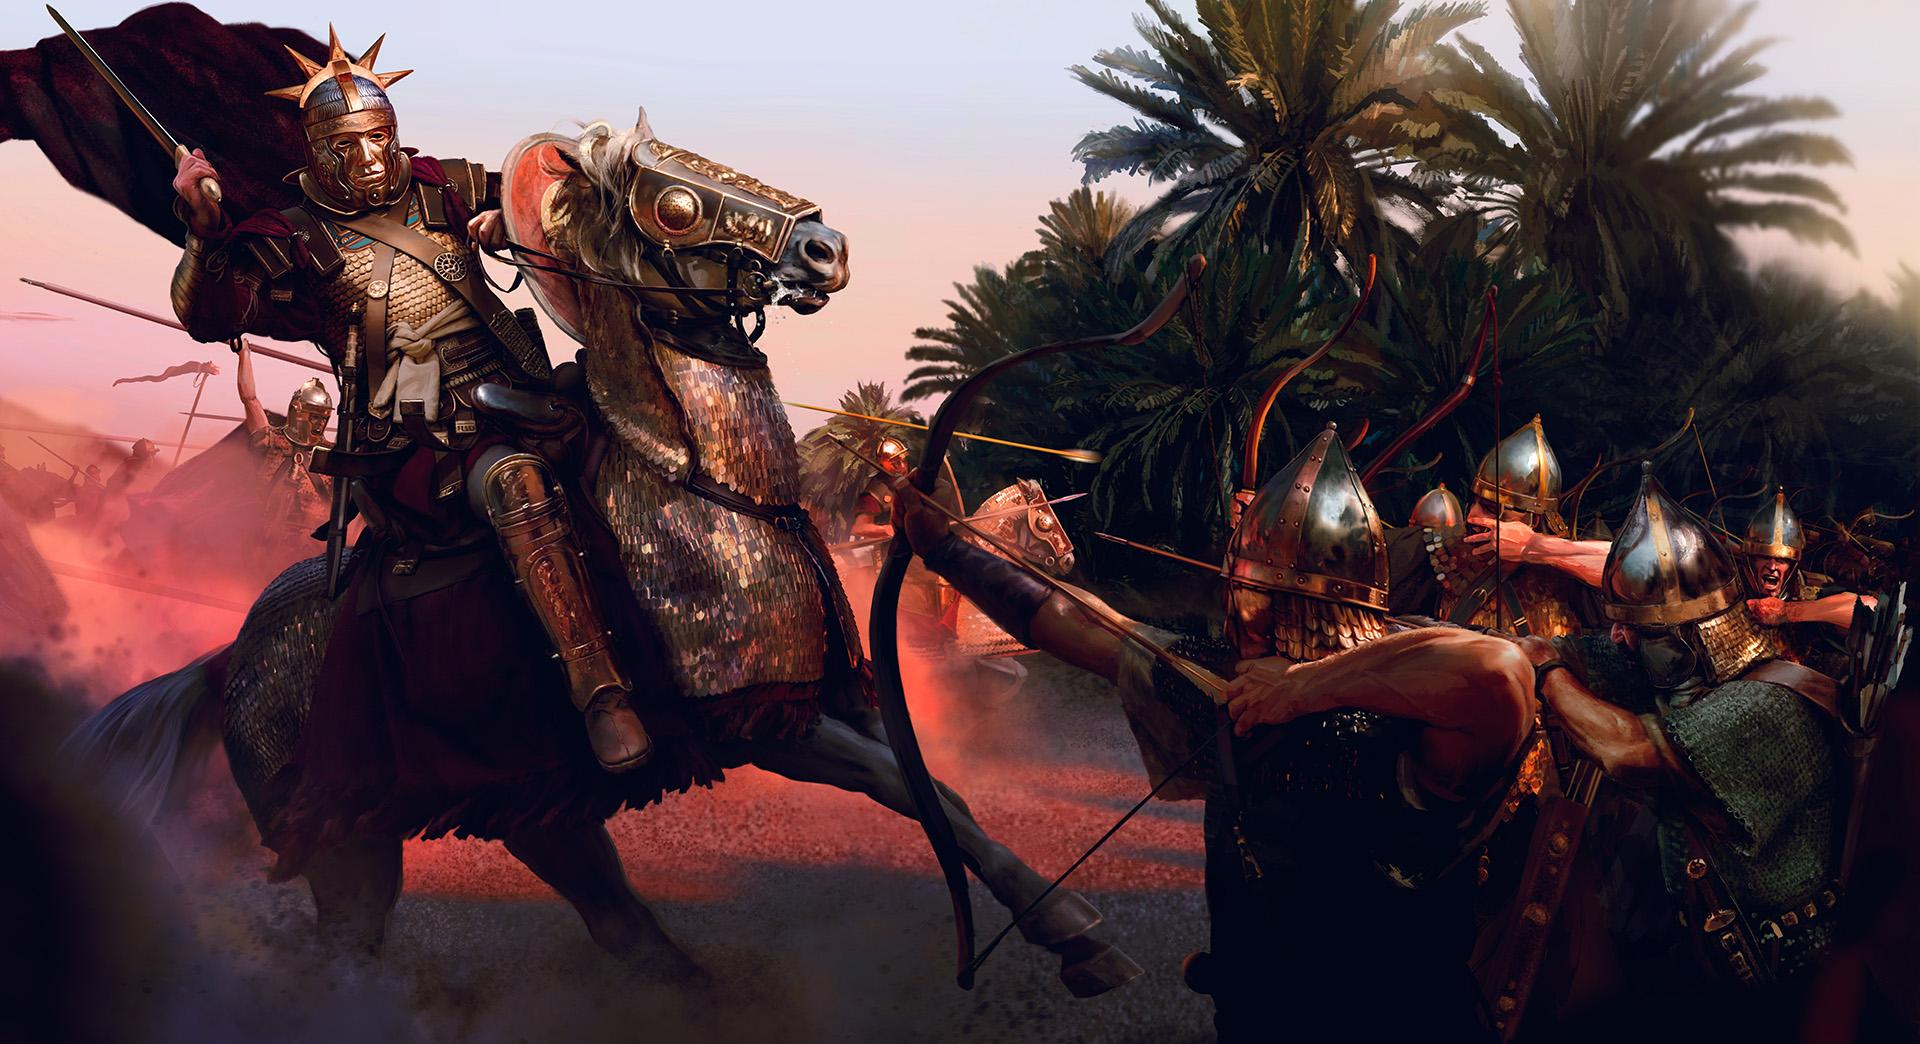 1920x1044 Divided Empire - Total War: Rome II - Wallpaper : totalwar